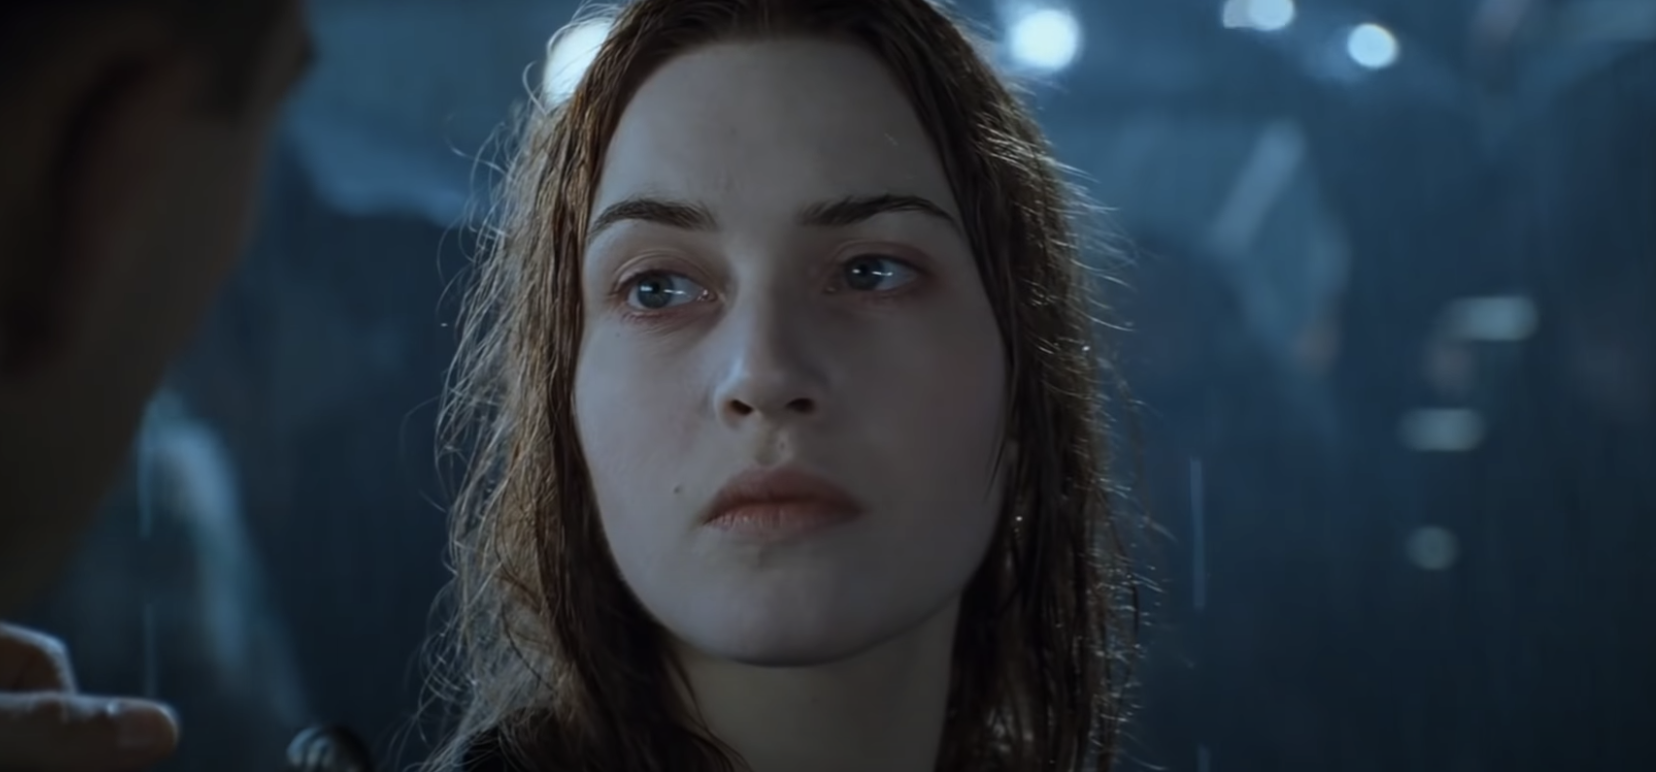 Rose at the end of the movie with wet hair, exhausted